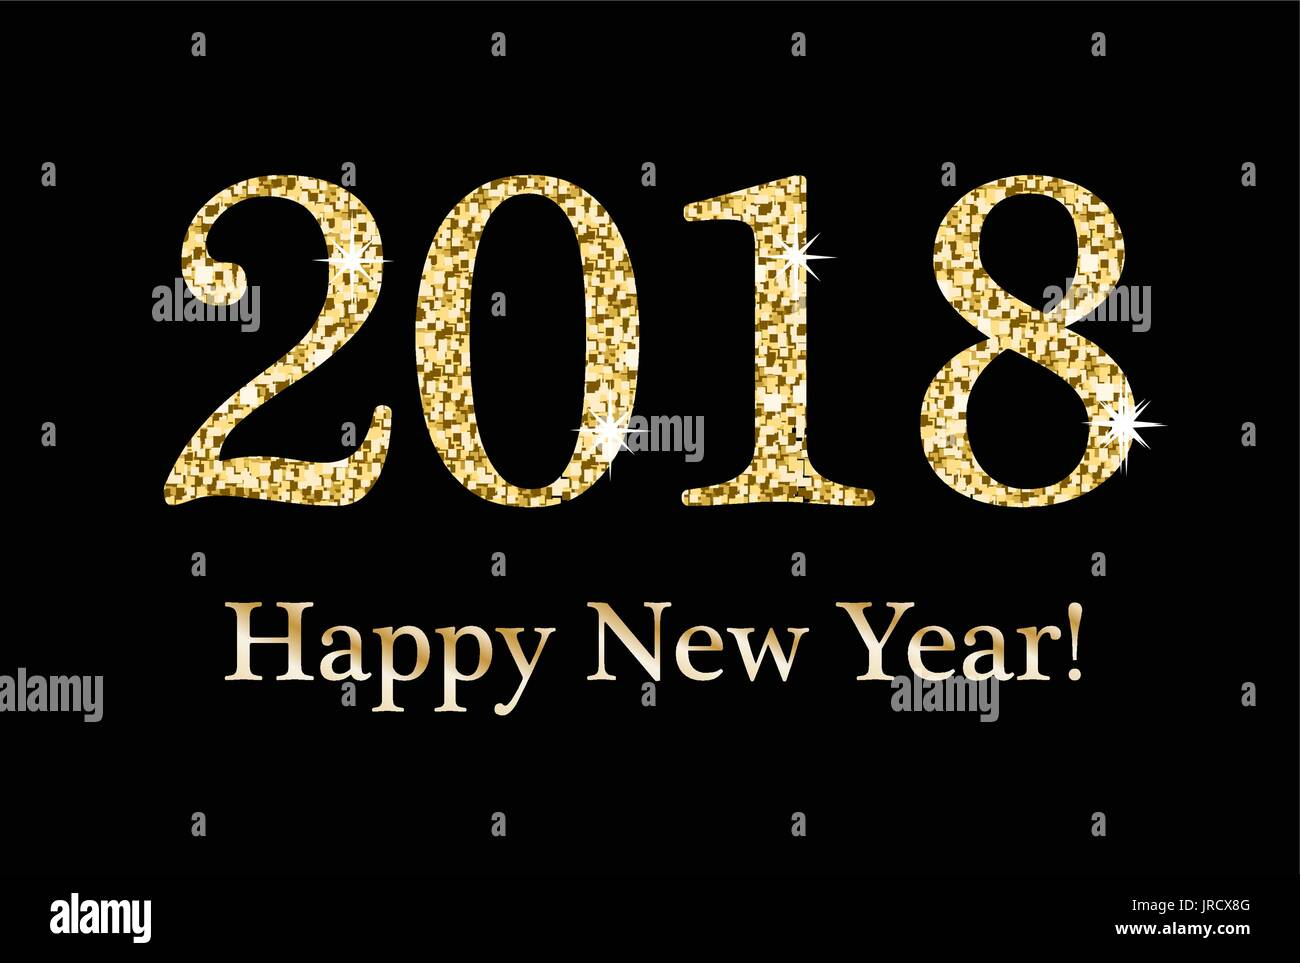 Happy new year 2018 card template merry christmas and happy new happy new year 2018 card template kristyandbryce Choice Image